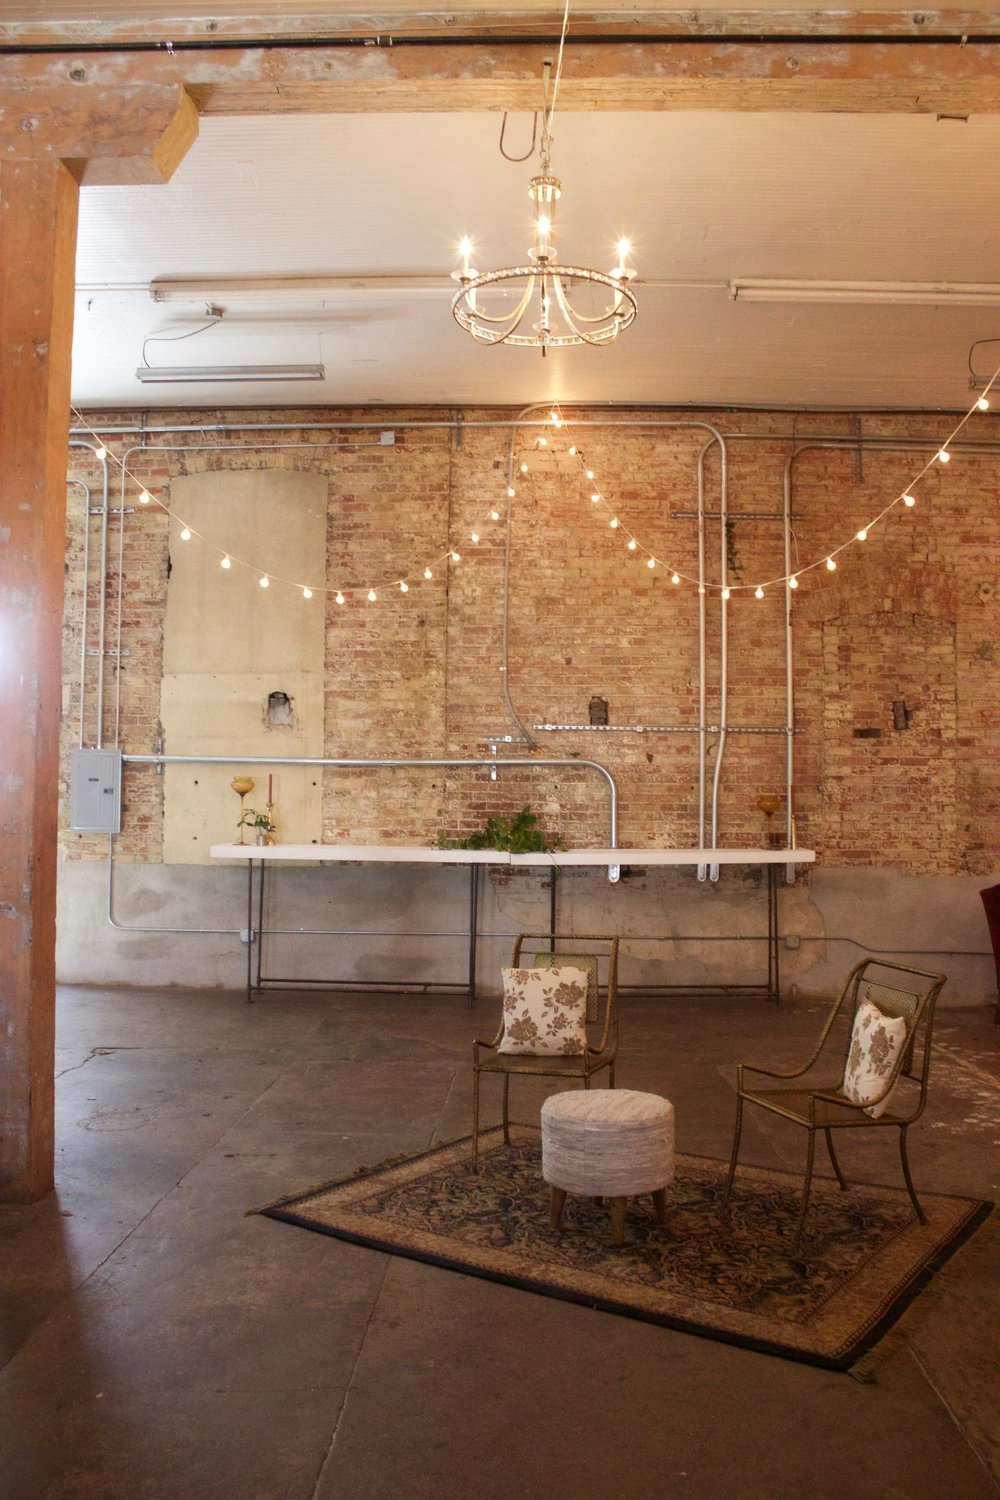 SPARK - 2,300 SQ FT14 FT CEILINGS2 WHITE WASHED MOBILE BARS1 PRIVATE LOFTKITCHEN ACCESS